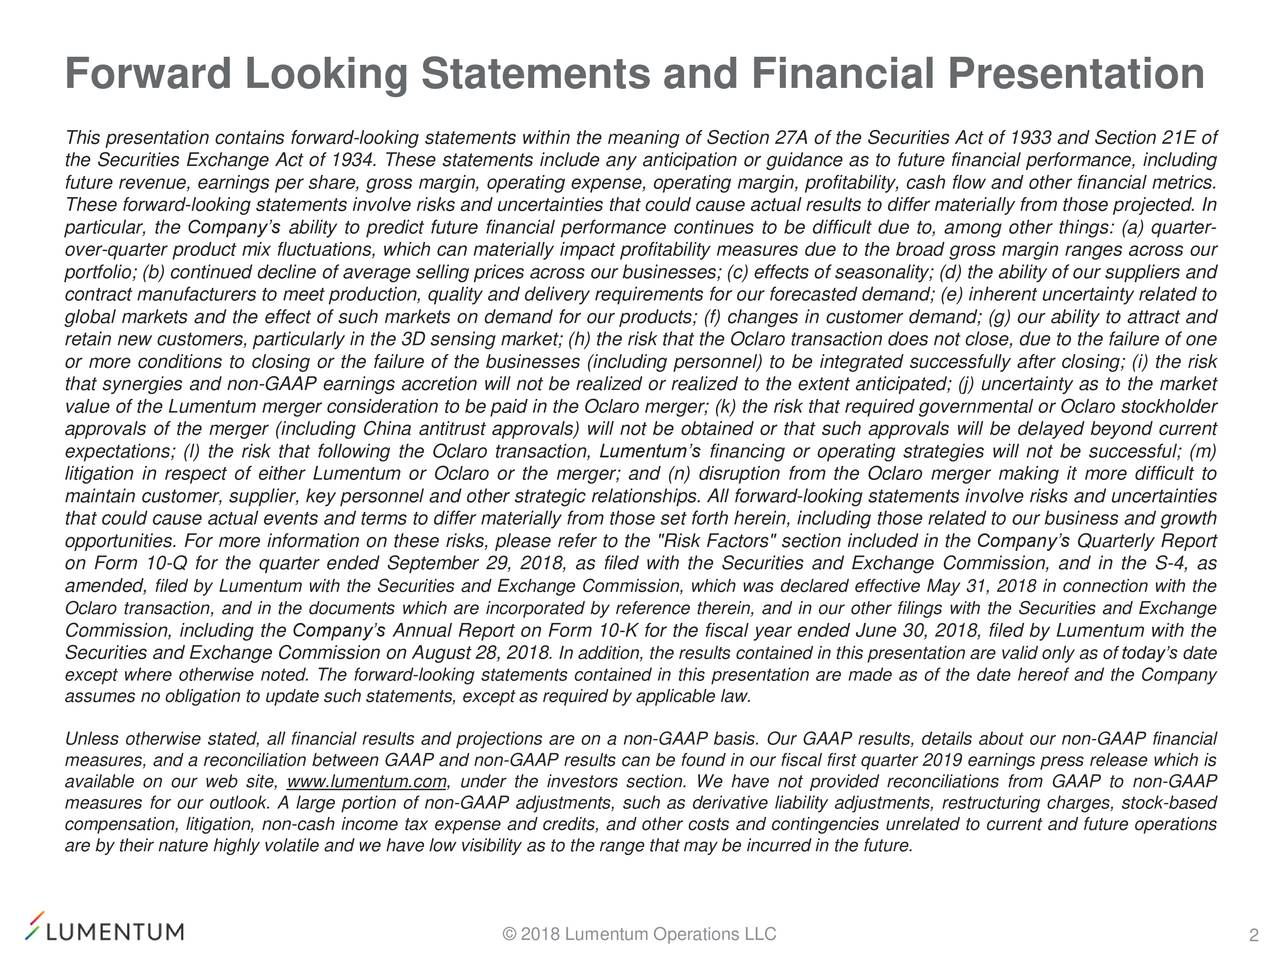 This presentation contains forward-looking statements within the meaning of Section 27A of the Securities Act of 1933 and Section 21E of the Securities Exchange Act of 1934. These statements include any anticipation or guidance as to future financial performance, including future revenue, earnings per share, gross margin, operating expense, operating margin, profitability, cash flow and other financial metrics. These forward-looking statements involve risks and uncertainties that could cause actual results to differ materially from those projected. In particular, the Company's ability to predict future financial performance continues to be difficult due to, among other things: (a) quarter- over-quarter product mix fluctuations, which can materially impact profitability measures due to the broad gross margin ranges across our portfolio; (b) continued decline of average selling prices across our businesses; (c) effects of seasonality; (d) the ability of our suppliers and contract manufacturers to meet production, quality and delivery requirements for our forecasted demand; (e) inherent uncertainty related to global markets and the effect of such markets on demand for our products; (f) changes in customer demand; (g) our ability to attract and retain new customers, particularly in the 3D sensing market; (h) the risk that the Oclaro transaction does not close, due to the failure of one or more conditions to closing or the failure of the businesses (including personnel) to be integrated successfully after closing; (i) the risk that synergies and non-GAAP earnings accretion will not be realized or realized to the extent anticipated; (j) uncertainty as to the market value of the Lumentum merger consideration to be paid in the Oclaro merger; (k) the risk that required governmental or Oclaro stockholder approvals of the merger (including China antitrust approvals) will not be obtained or that such approvals will be delayed beyond current expectations; (l) the risk that follo